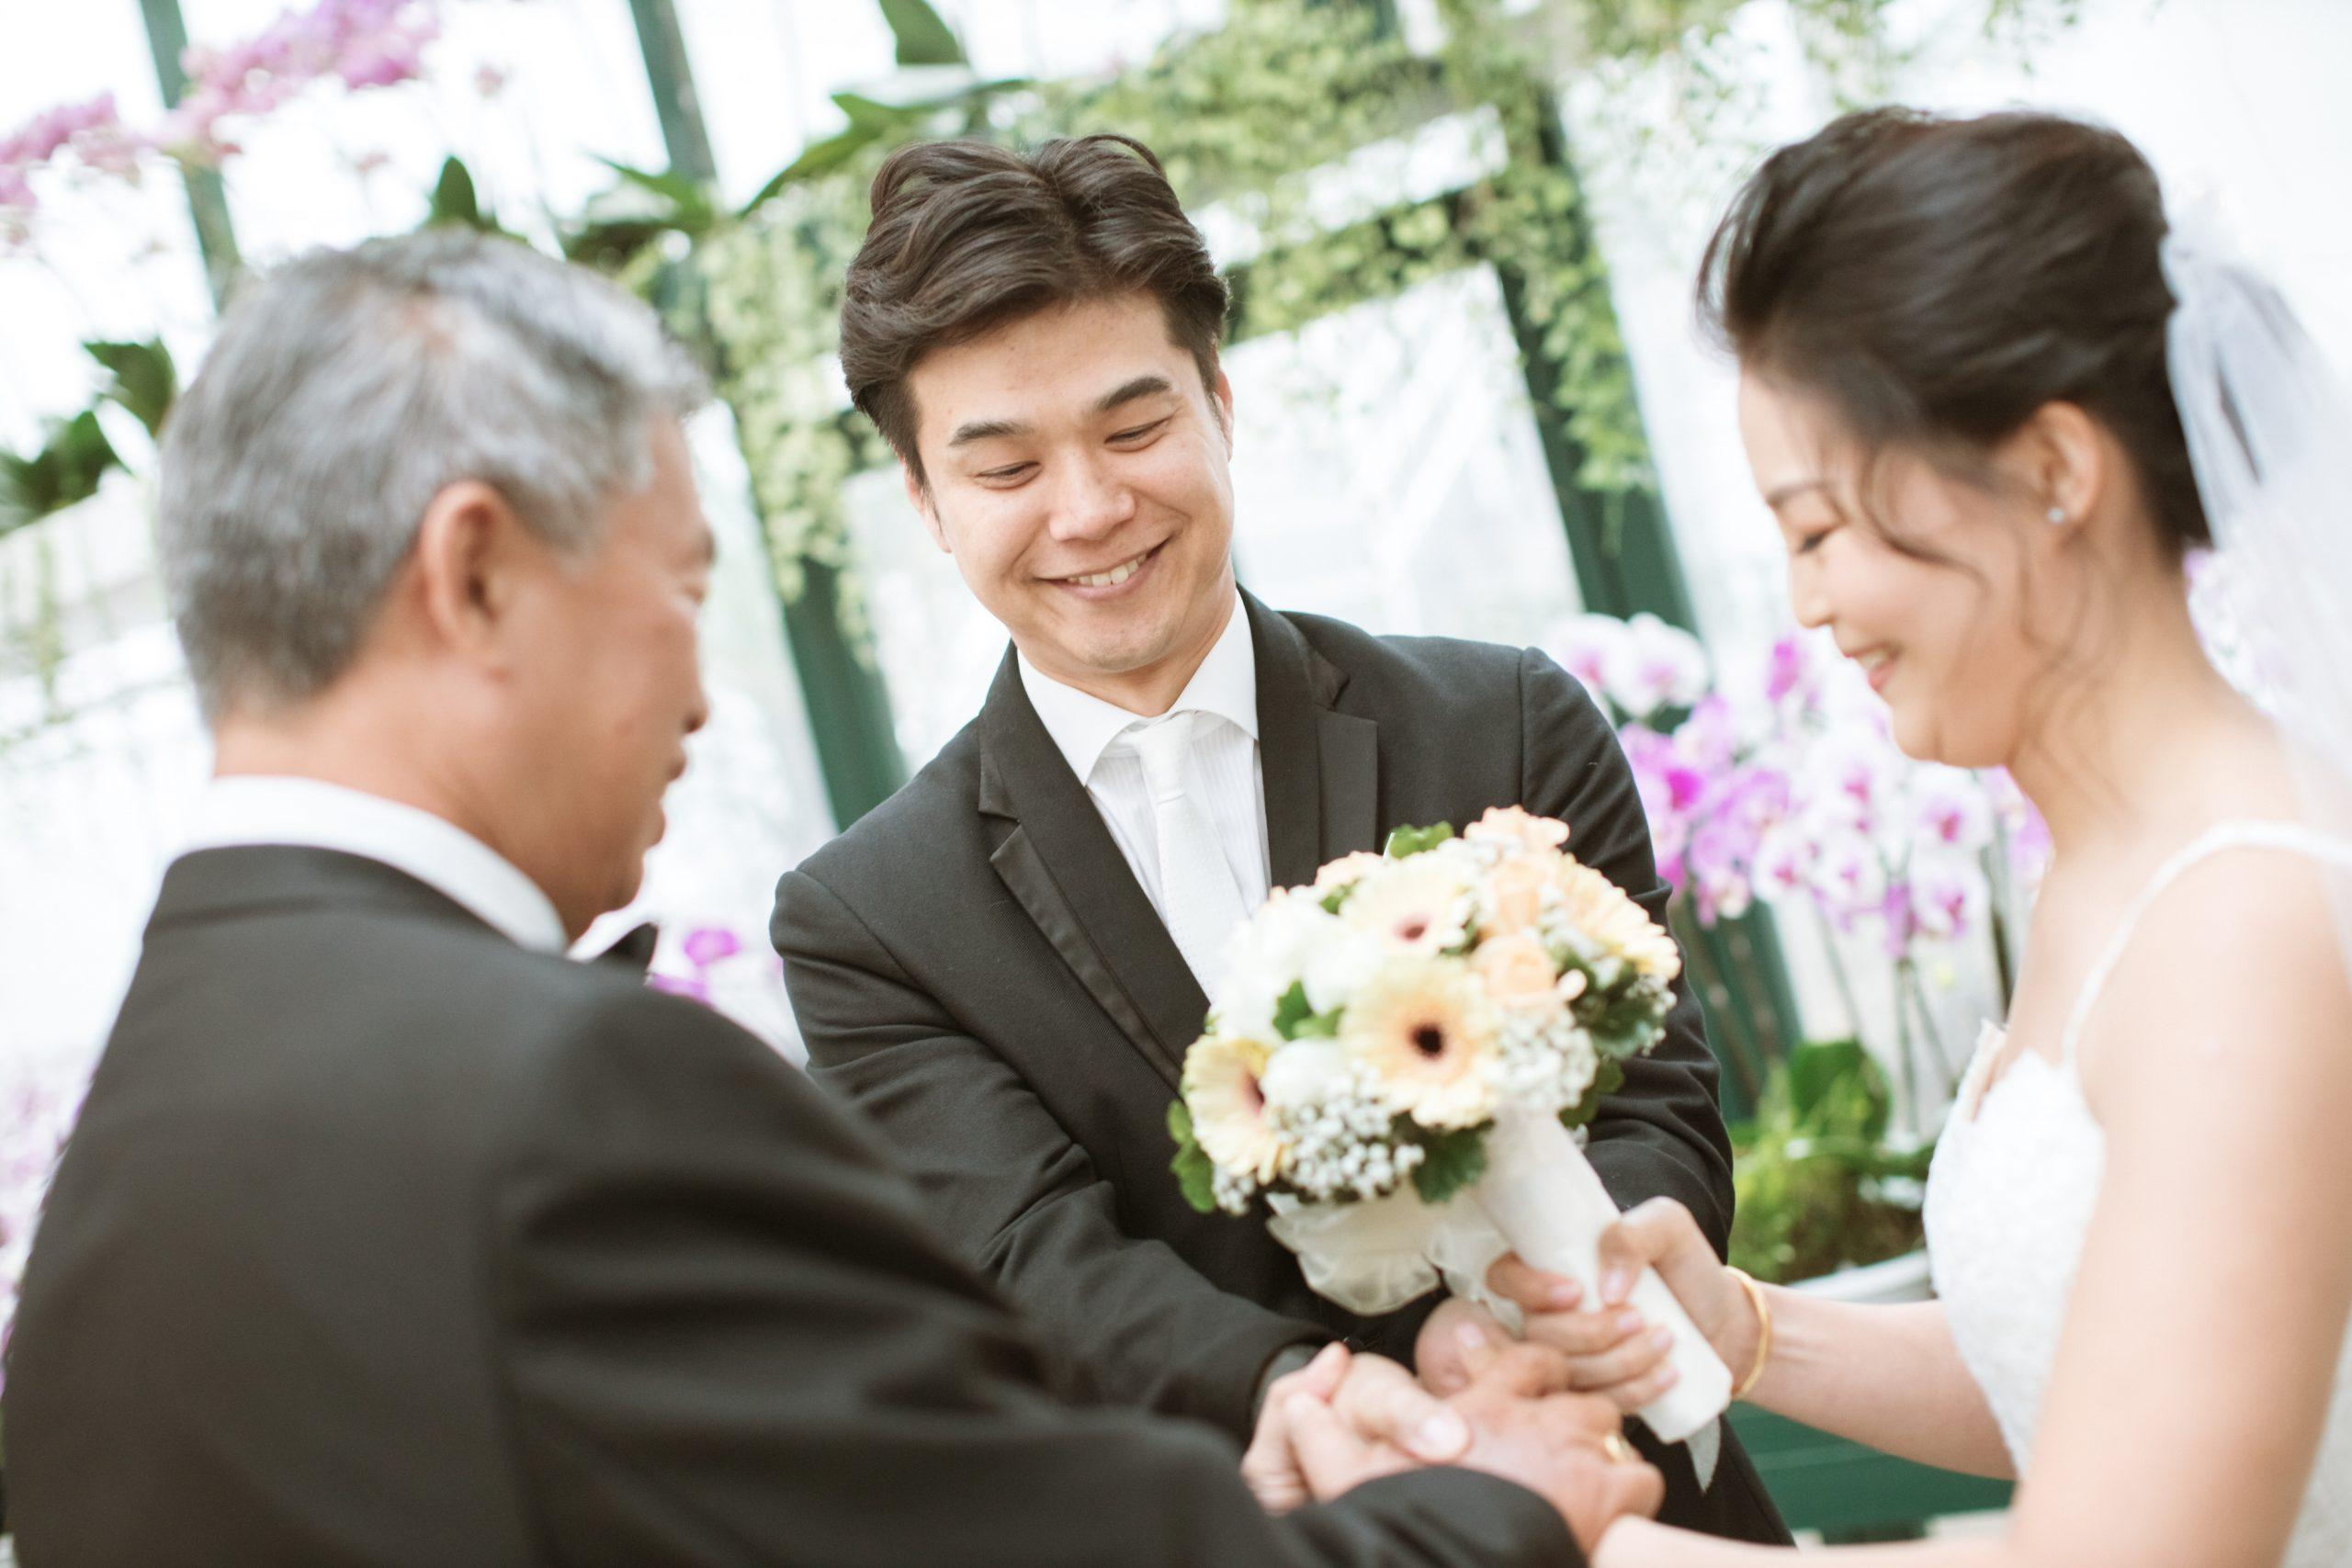 Exchange rings ROM ceremony actual day The Majestic Hotel Kuala Lumpur Cross cultural wedding japnese malaysian